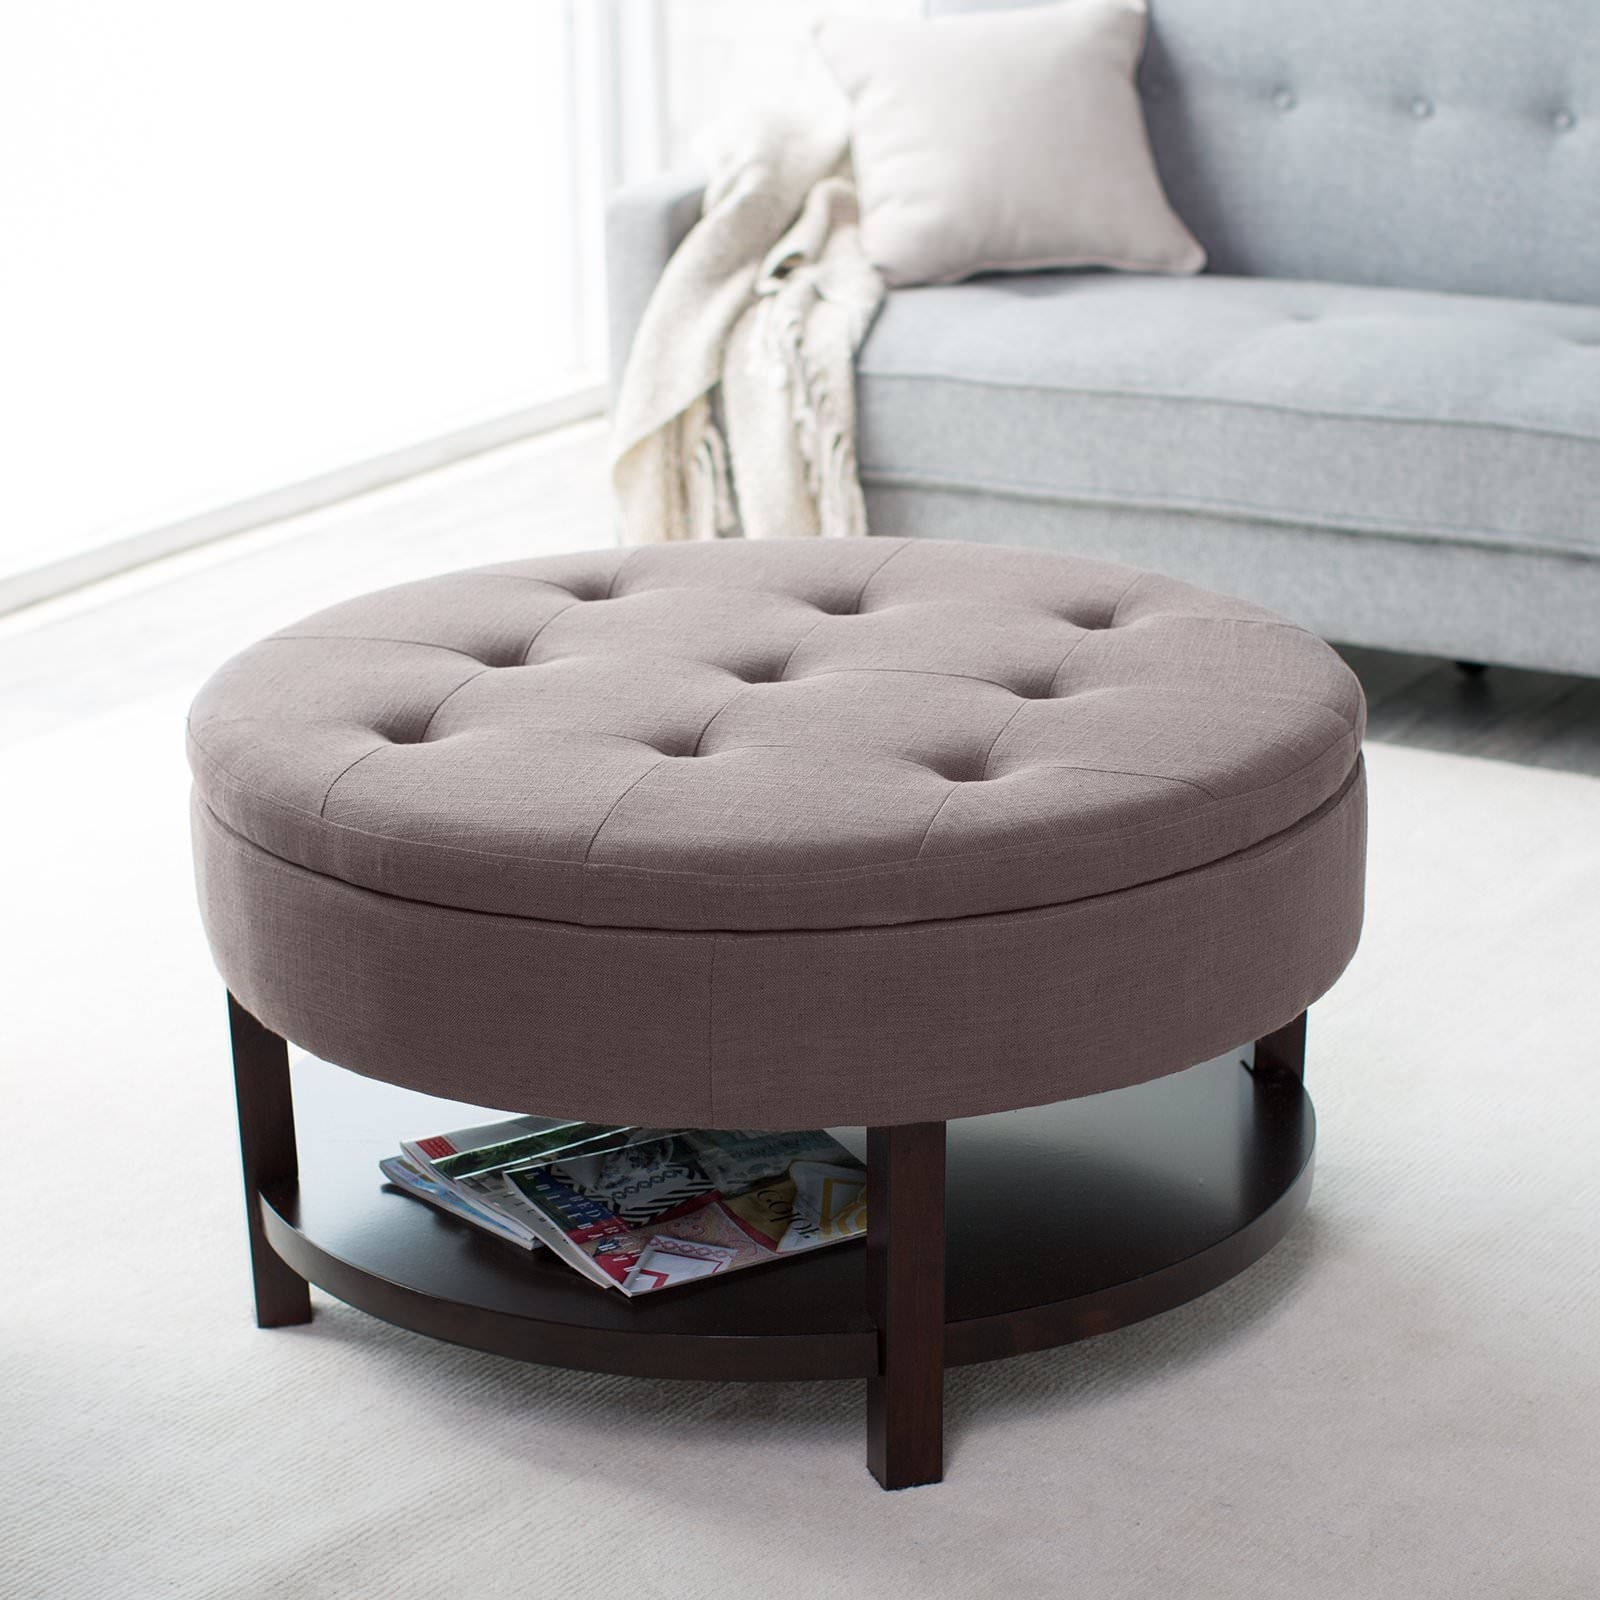 Preferred Round Button Tufted Coffee Tables Within Round Fabric Ottoman Coffee Table — Sushi Ichimura Decor (View 10 of 20)